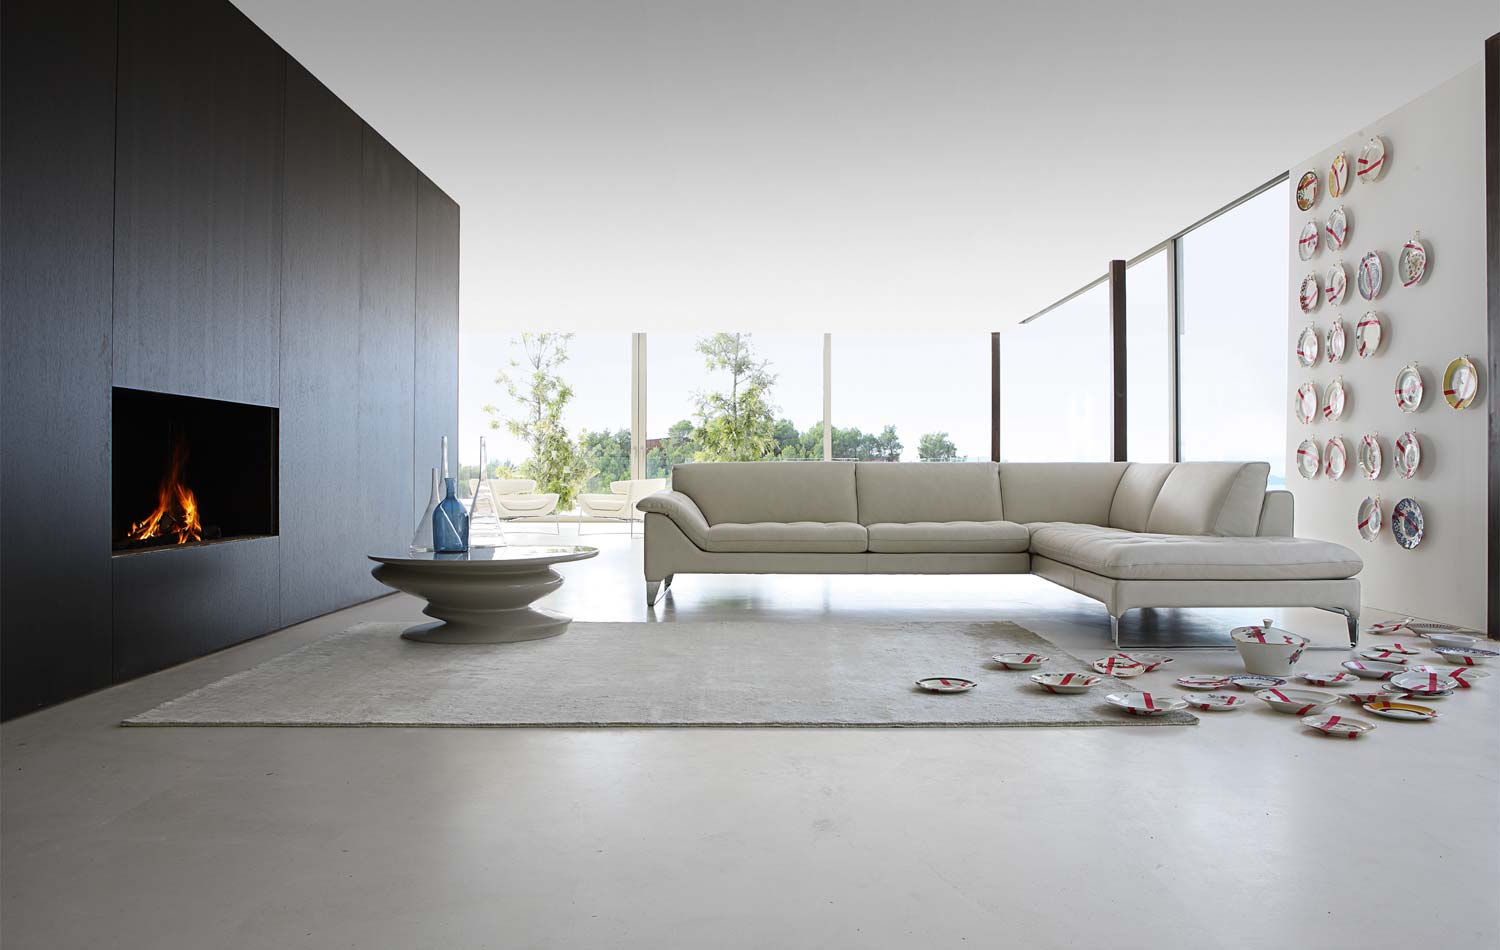 Living Room Inspiration 120 Modern Sofas By Roche Bobois Part 23 Architecture Amp Design